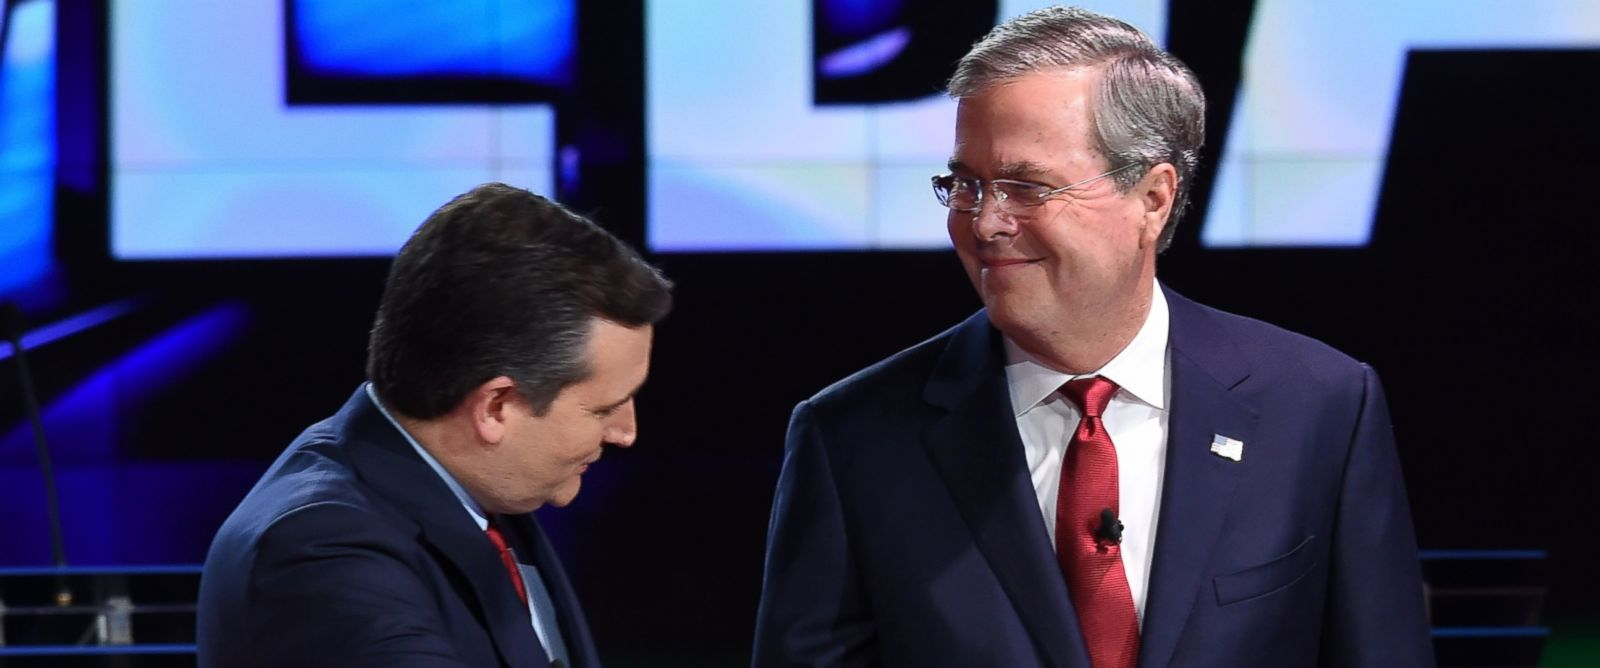 PHOTO: Republican presidential candidate Texas Sen. Ted Cruz (L) shakes hands with former Gov. Florida Jeb Bush on Dec. 15, 2015 at The Venetian Las Vegas in Las Vegas.